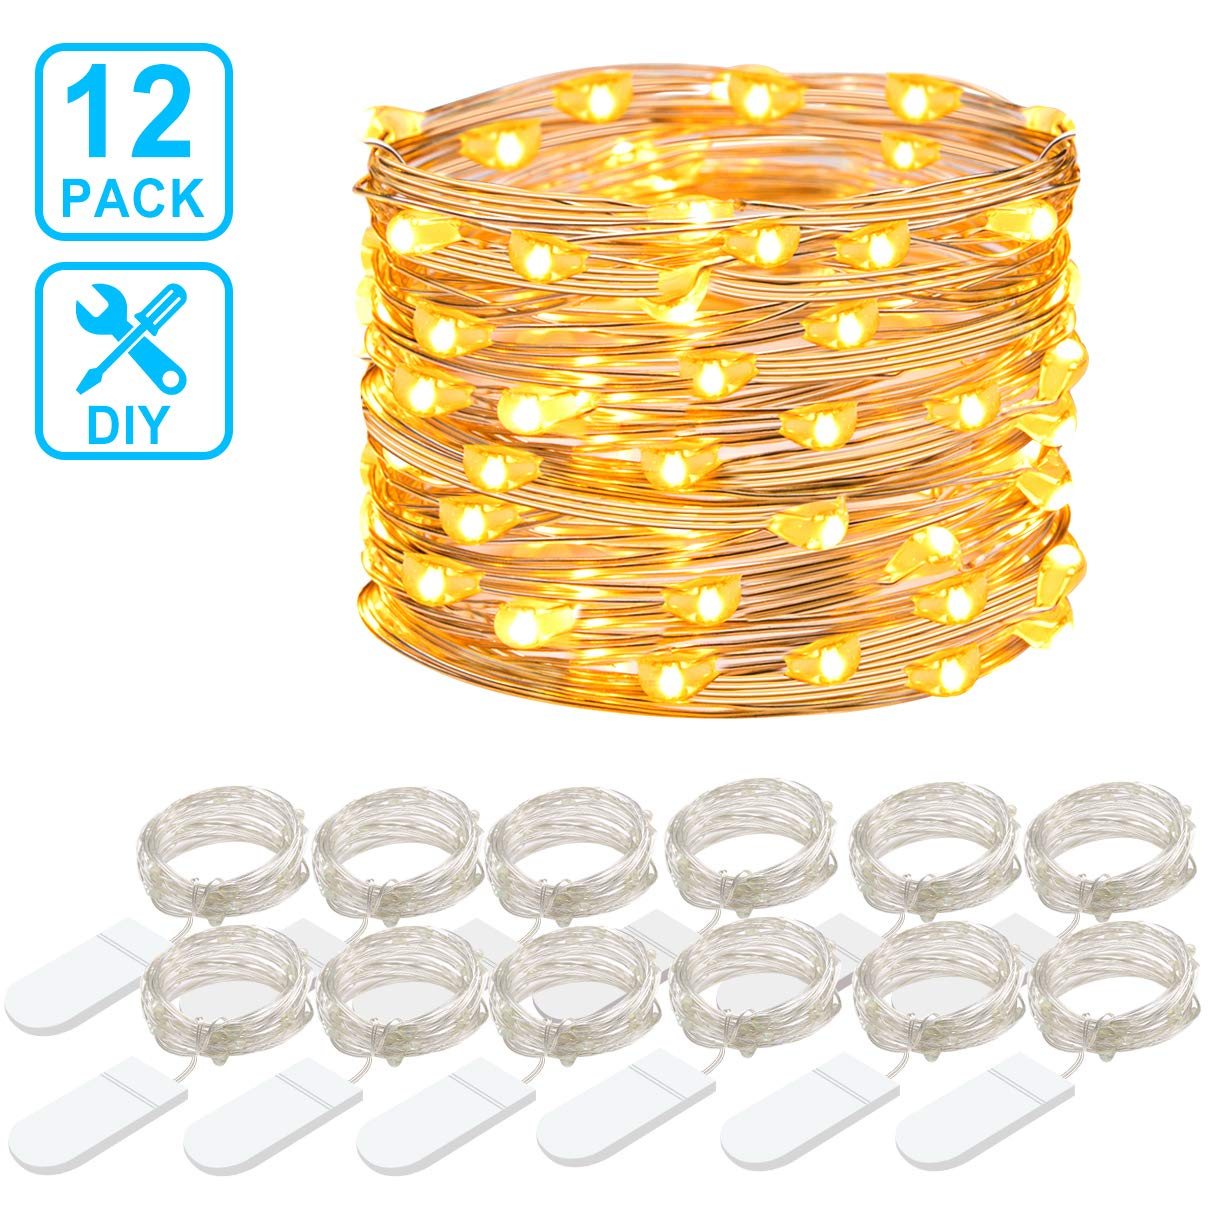 MINGER 12 Packs Fairy String Lights, 3.3FT 20 LEDs Battery Operated Jar Lights Bedroom Patio Wedding Party Christmas (Warm White)